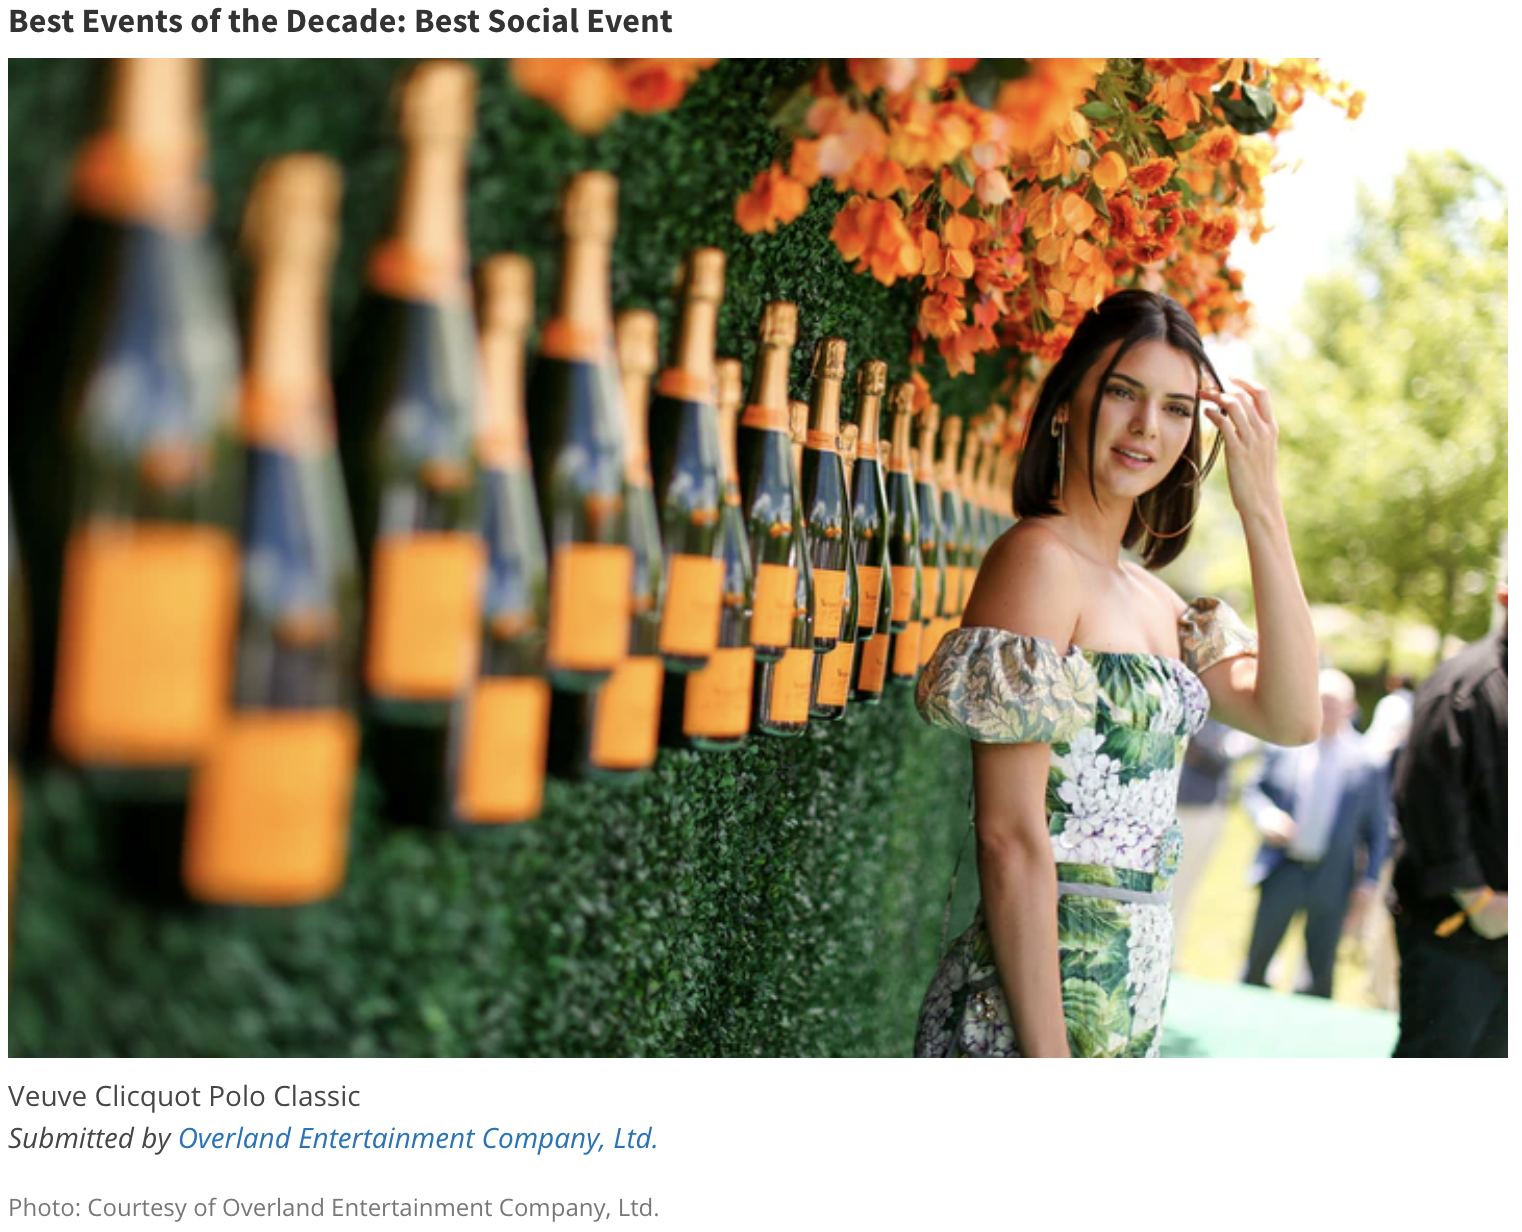 best events of the decade: Veuve Clicquot Polo Classic best social event